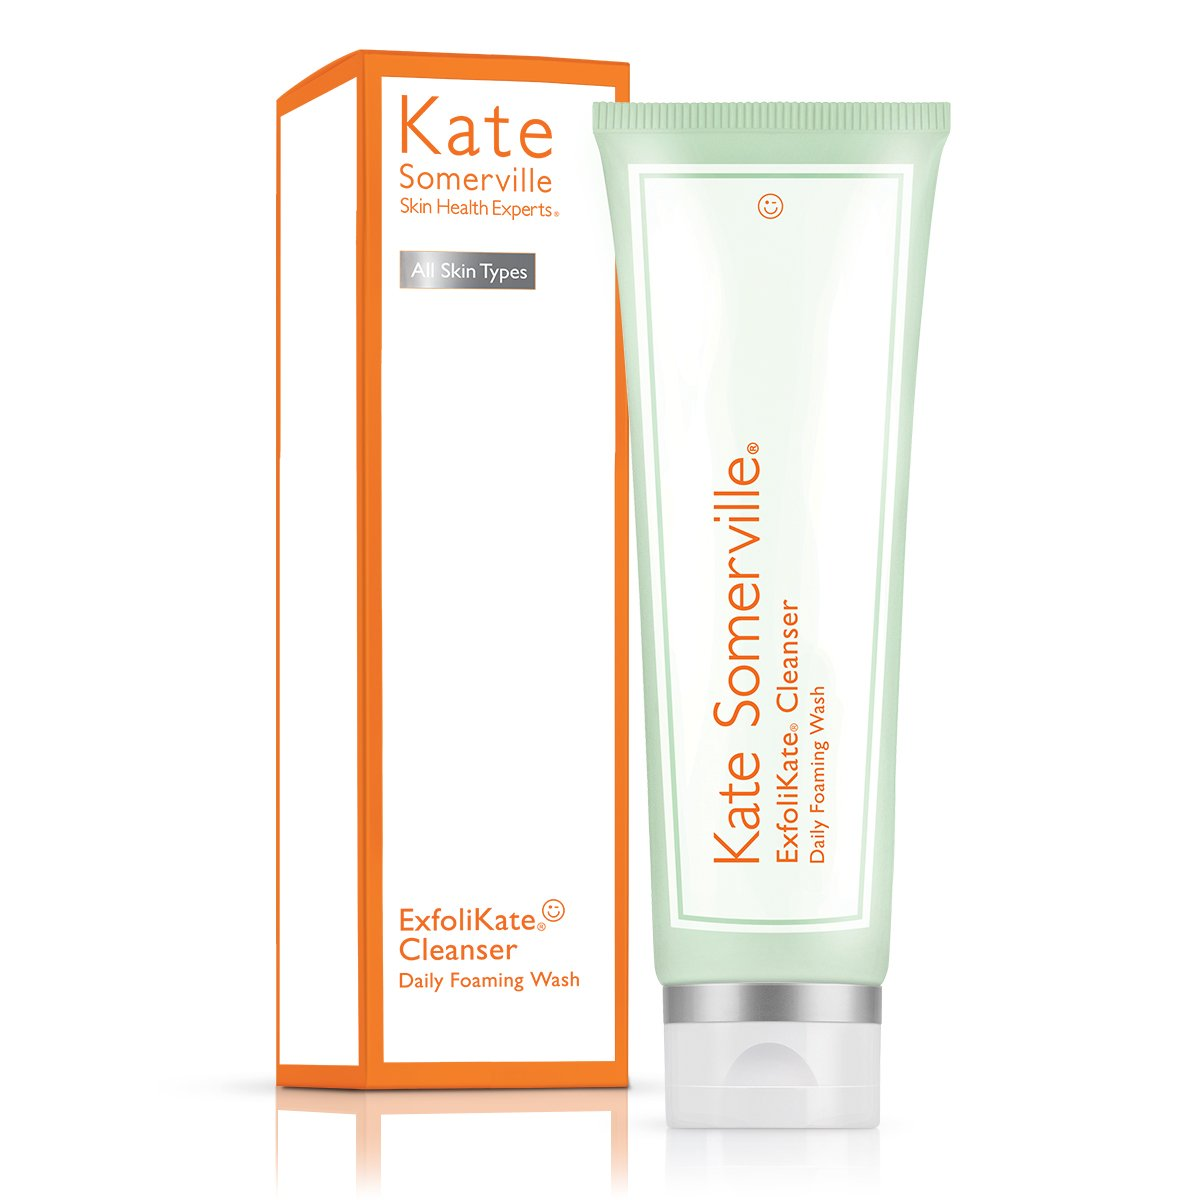 Kate Somerville ExfoliKate Cleanser Daily Foaming Wash – Facial Cleanser 4.0 Fl. Oz.